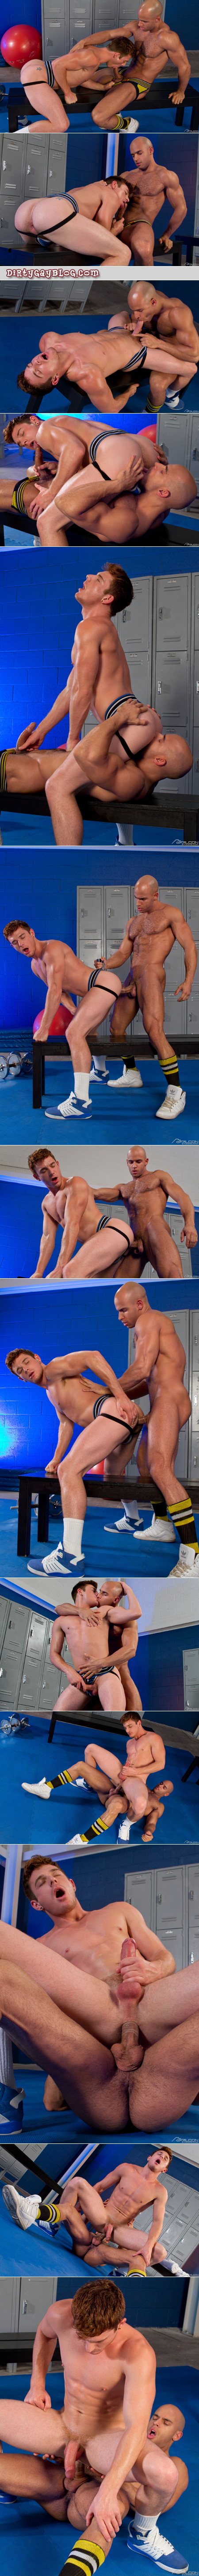 Redheaded young guy in a jockstrap fucked by his slim, muscular workout buddy.